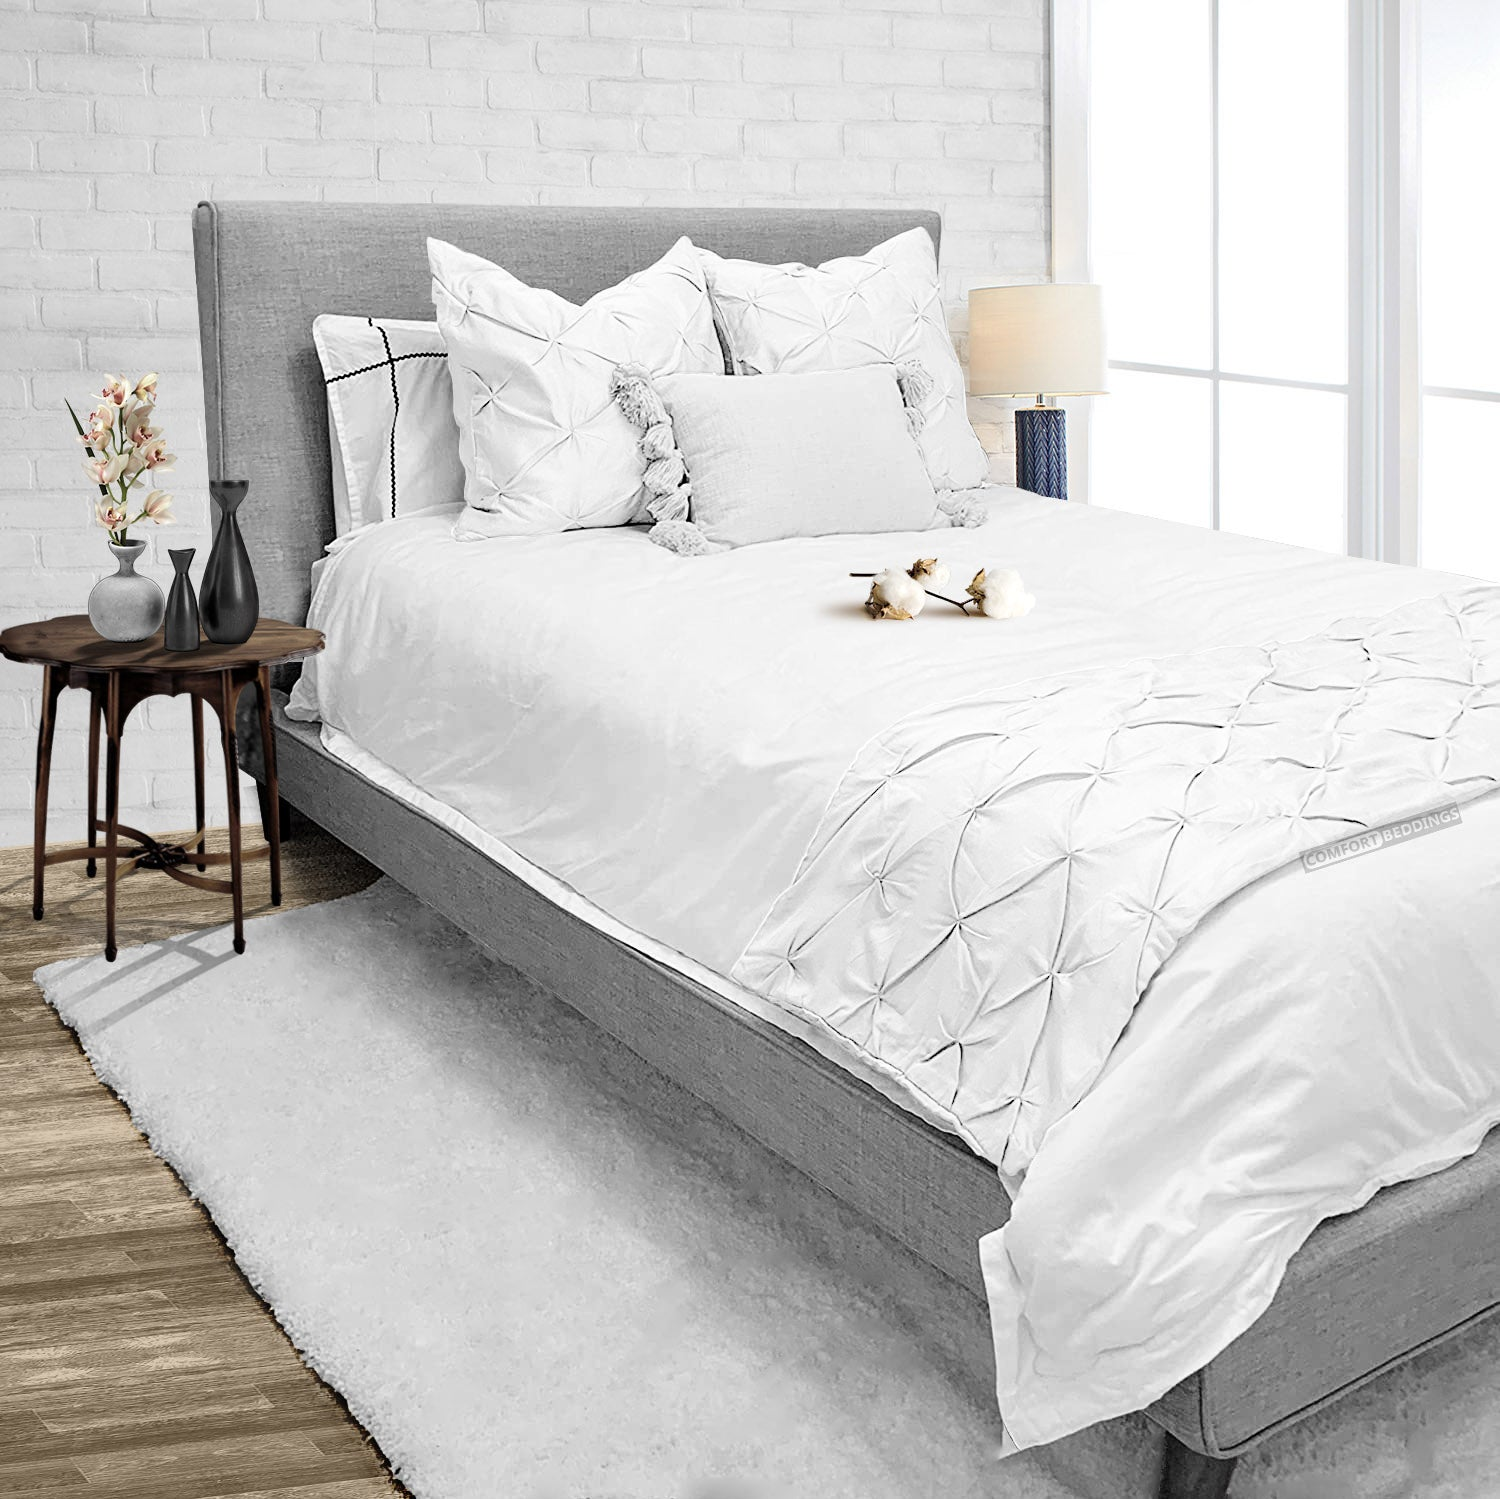 Luxury White Pinch Bed Runner Set